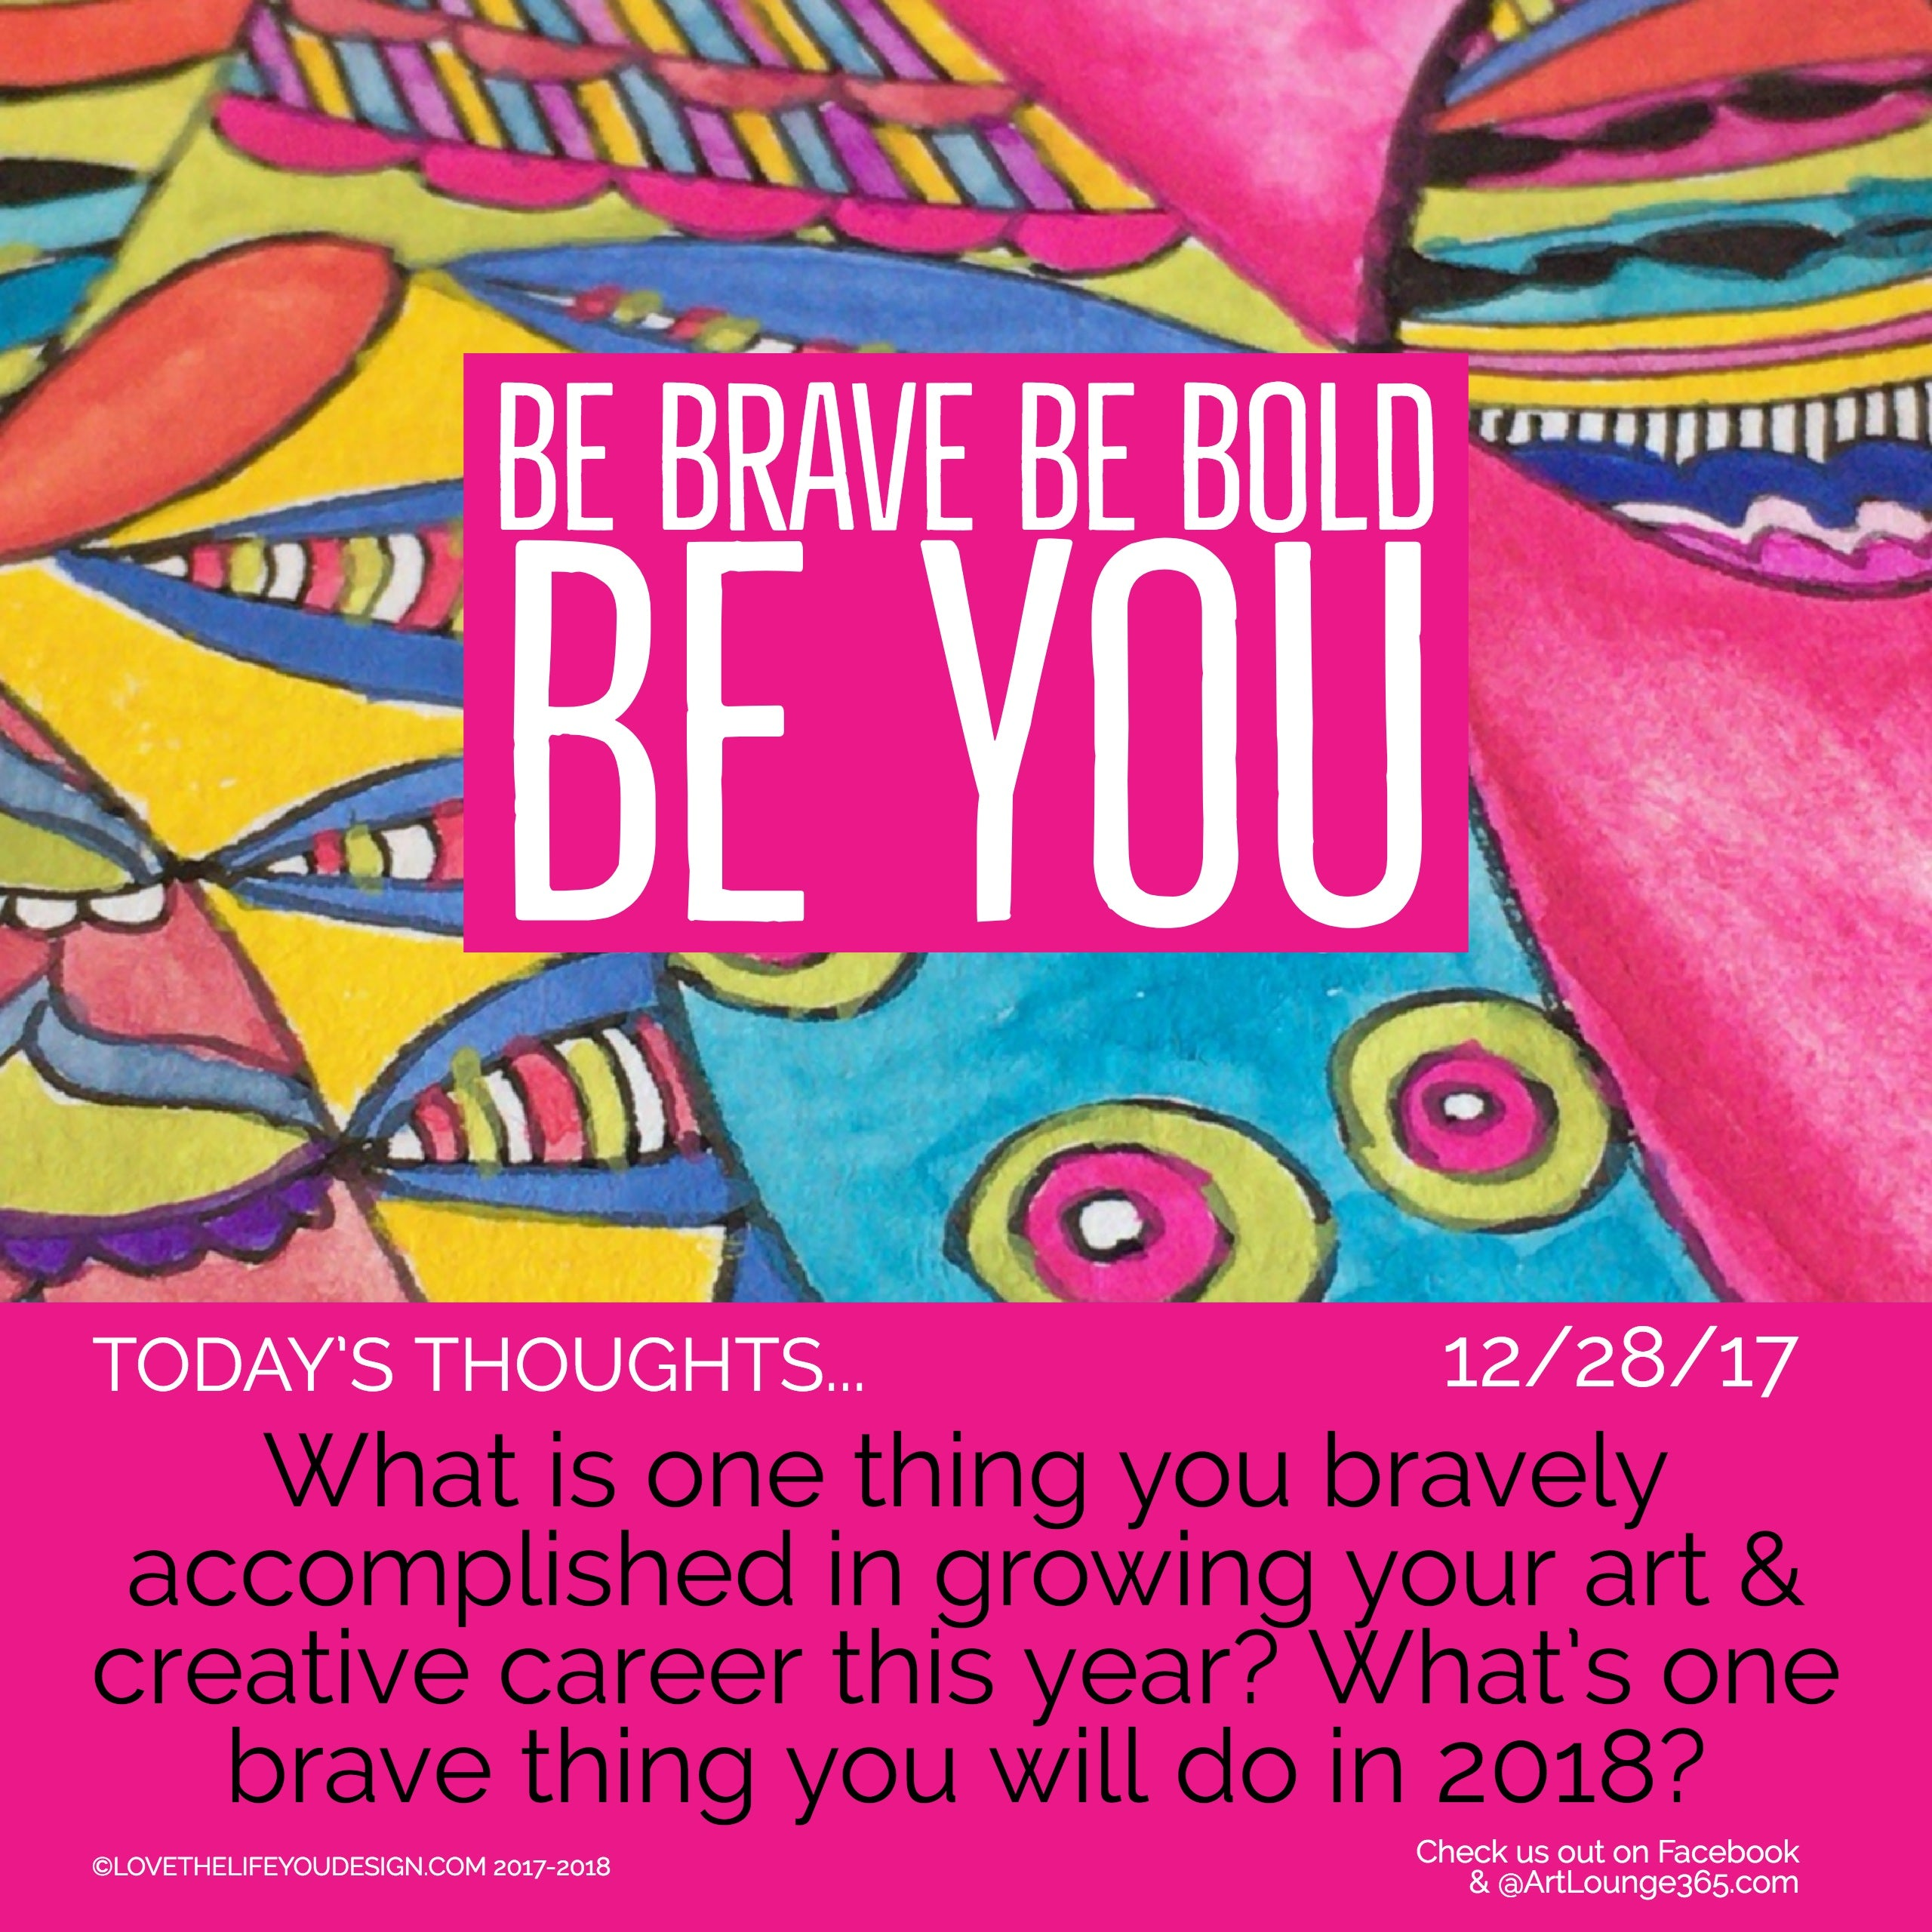 Be Brave, Be Bold - Be You!